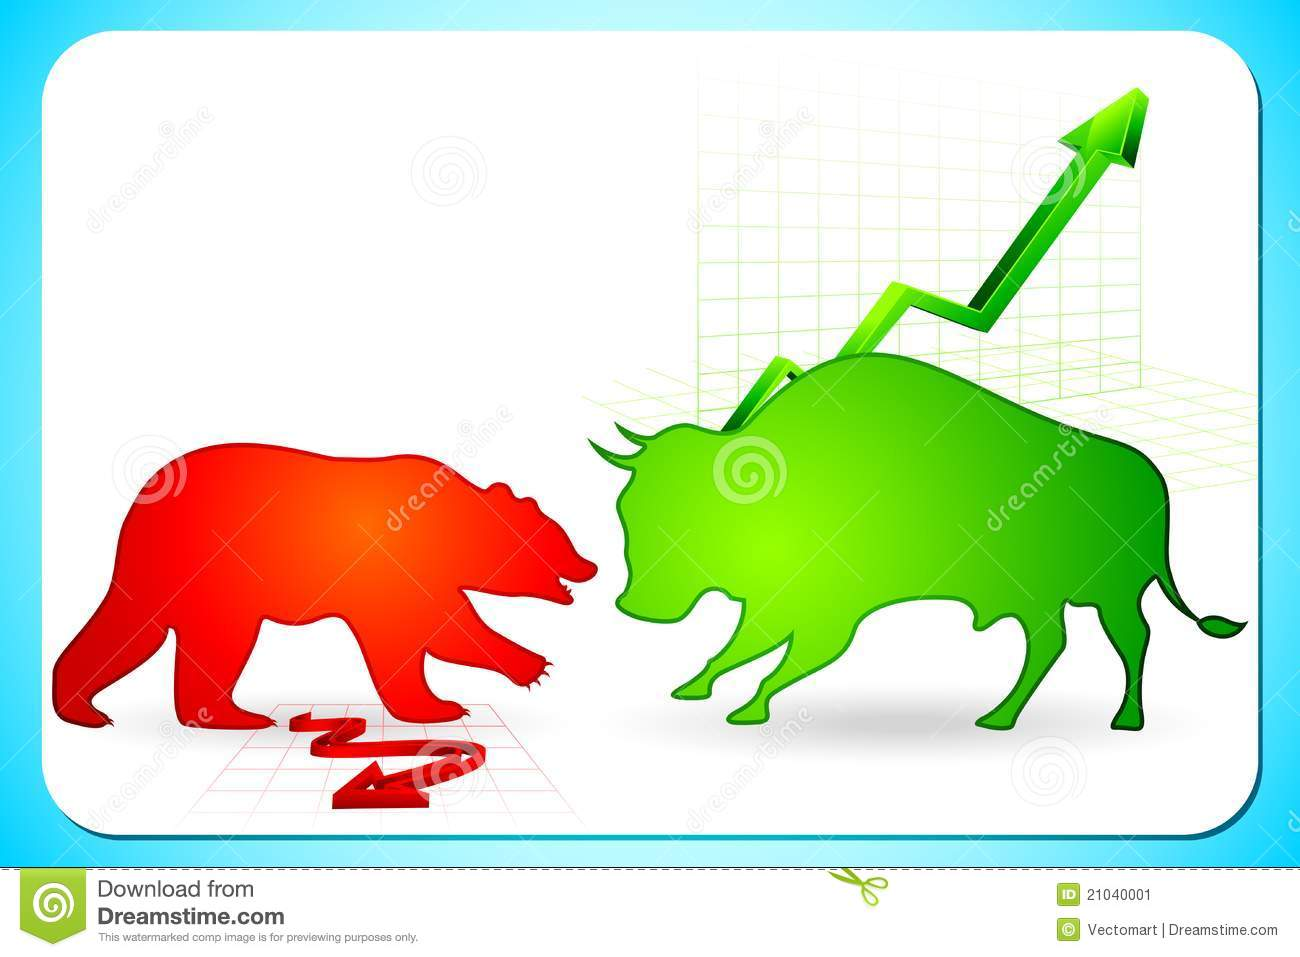 stock market bearish